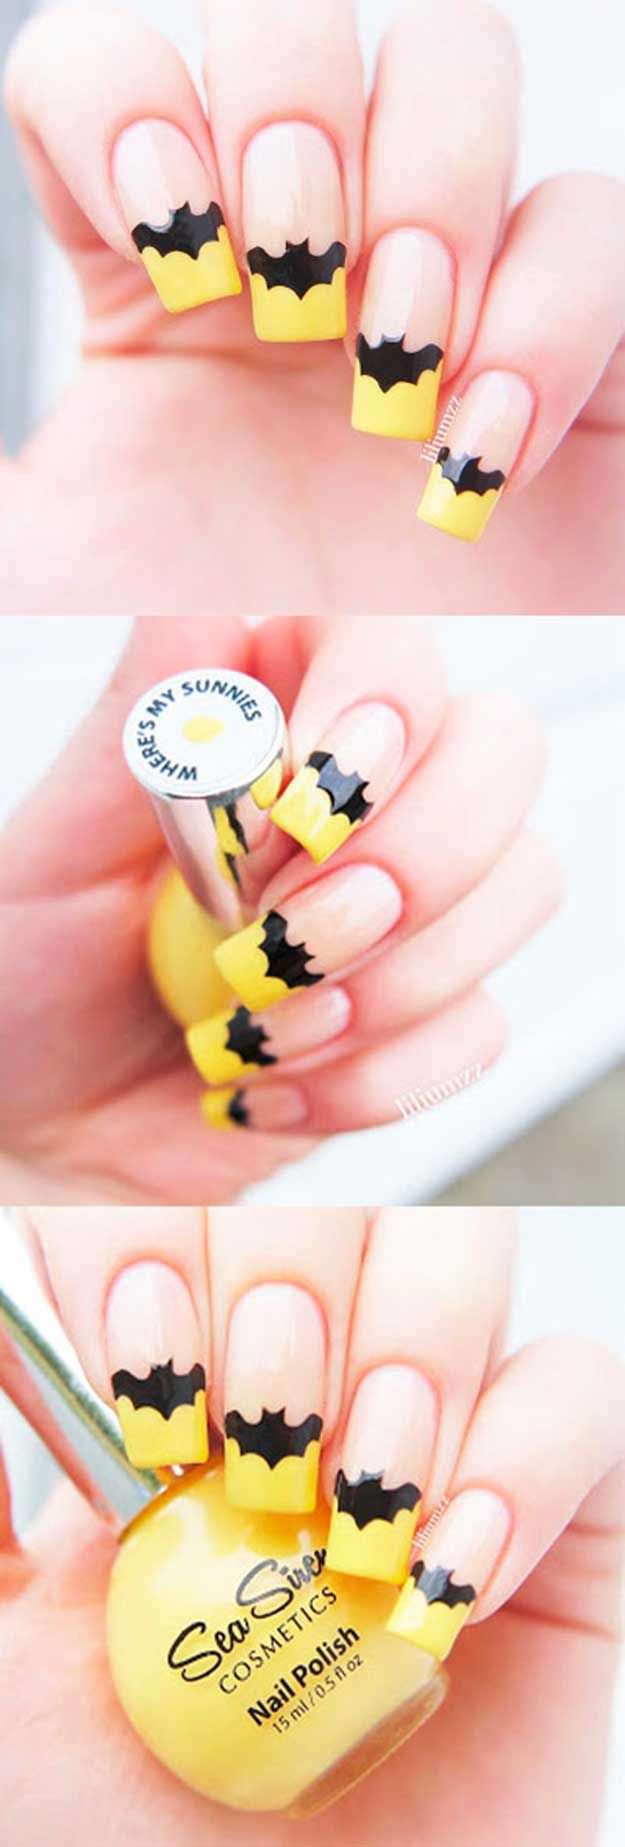 35 Unbelievably Brilliant French Manicures To Do At Home